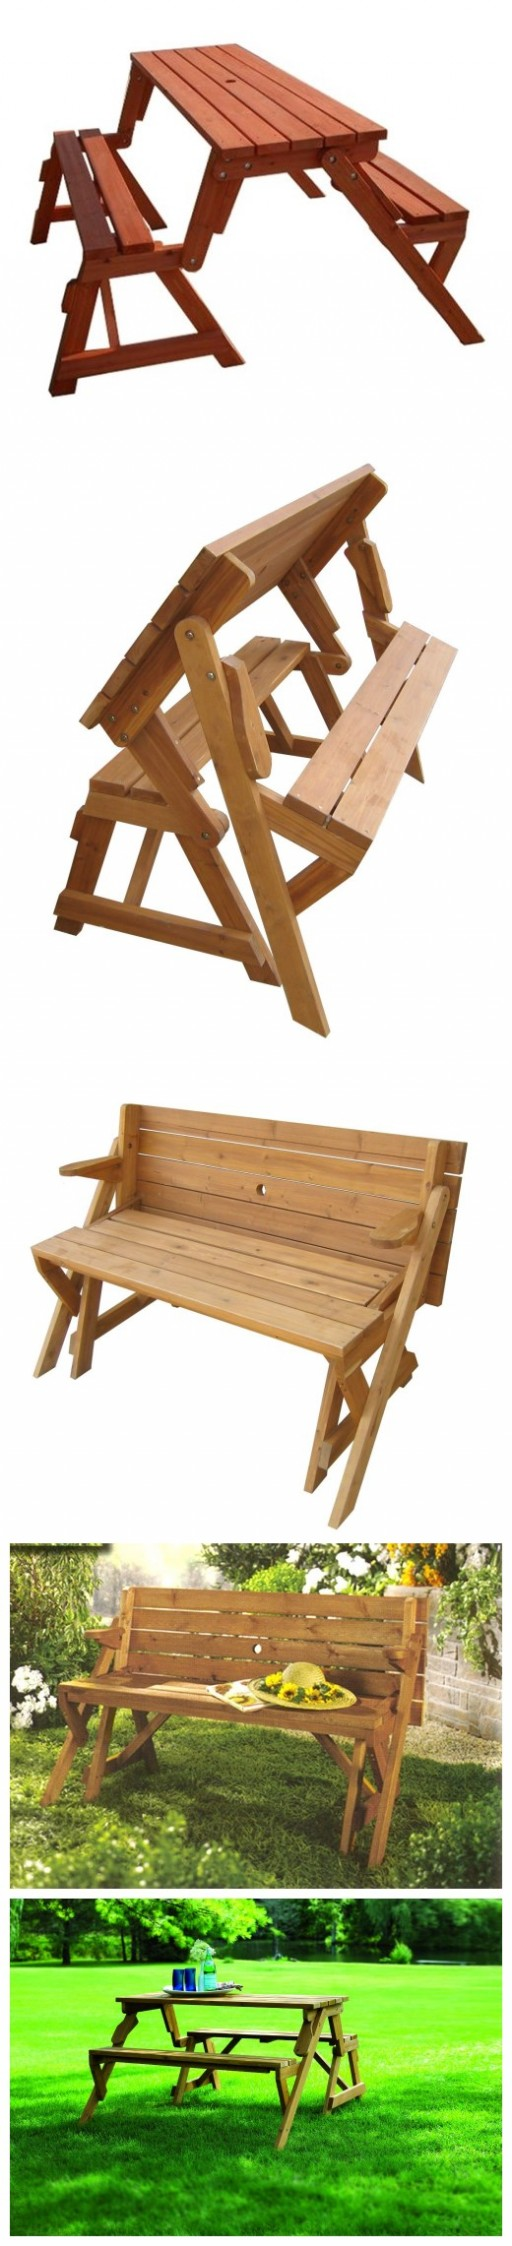 Diy Folding Adirondack Chair Plans How To Build Picnic